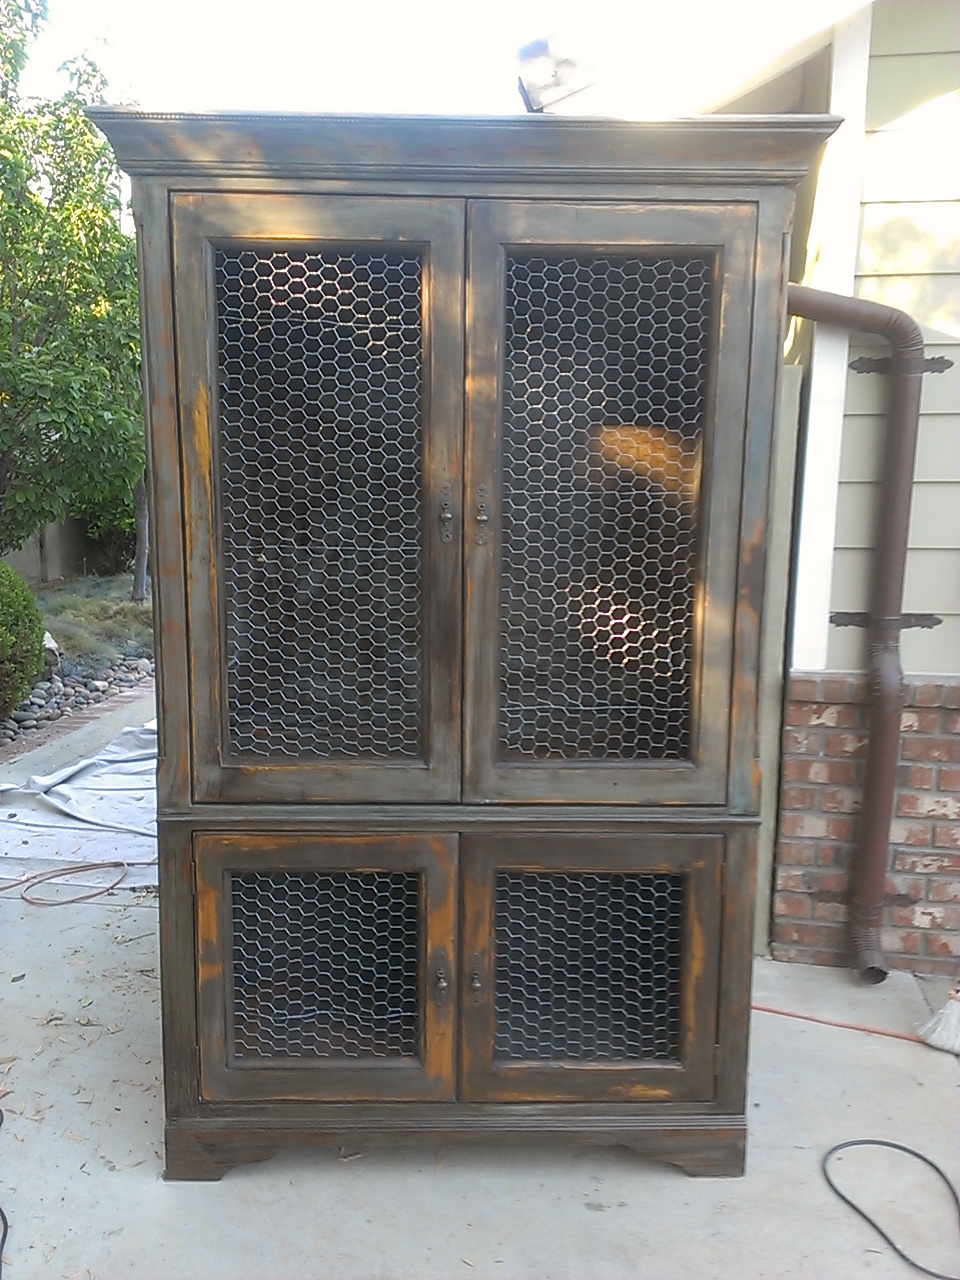 Superb Then I Cut Out The Panels With My Jig Saw On All Four Doors And Stapled Chicken  Wire To The Inside Of The Doors. This Gave The Piece A Rustic French ...